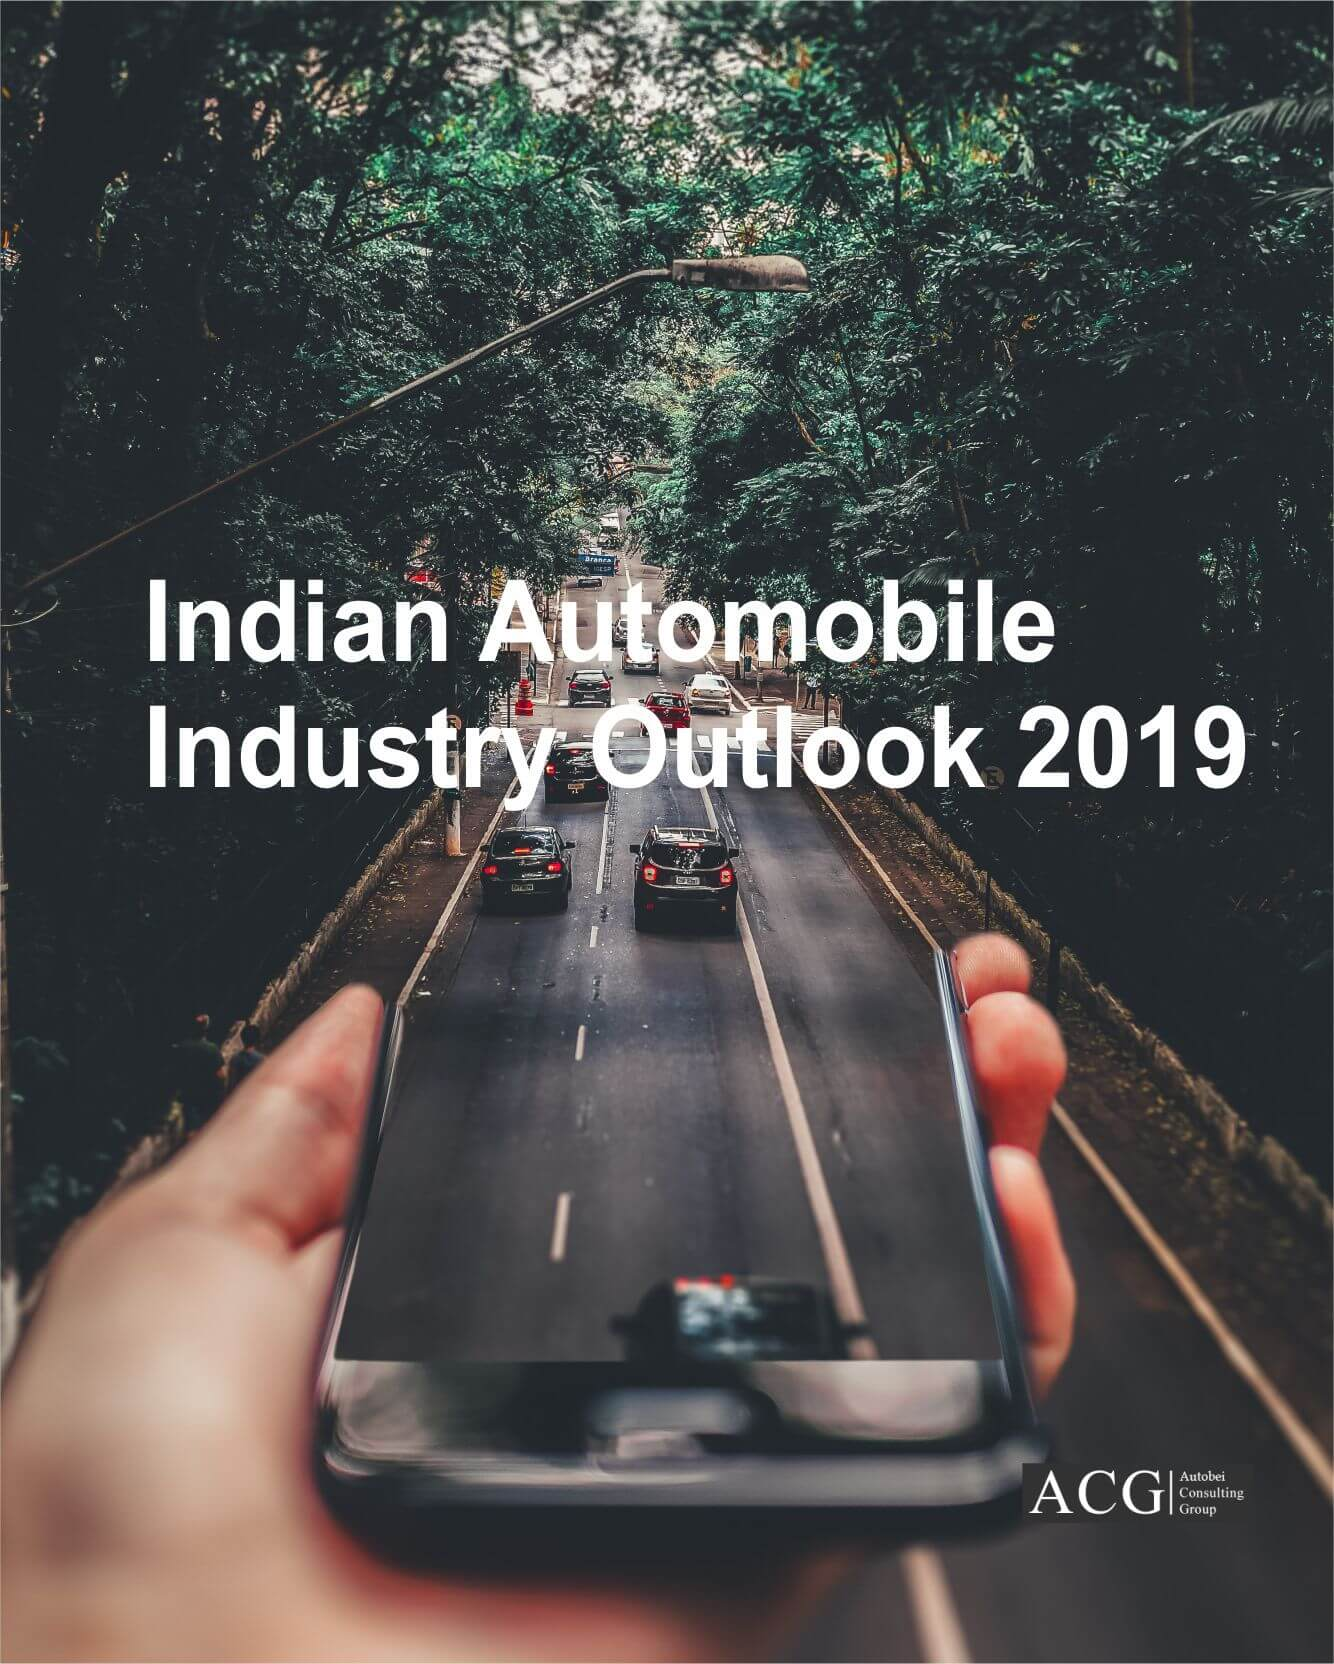 Indian Automobile Industry Outlook 2019